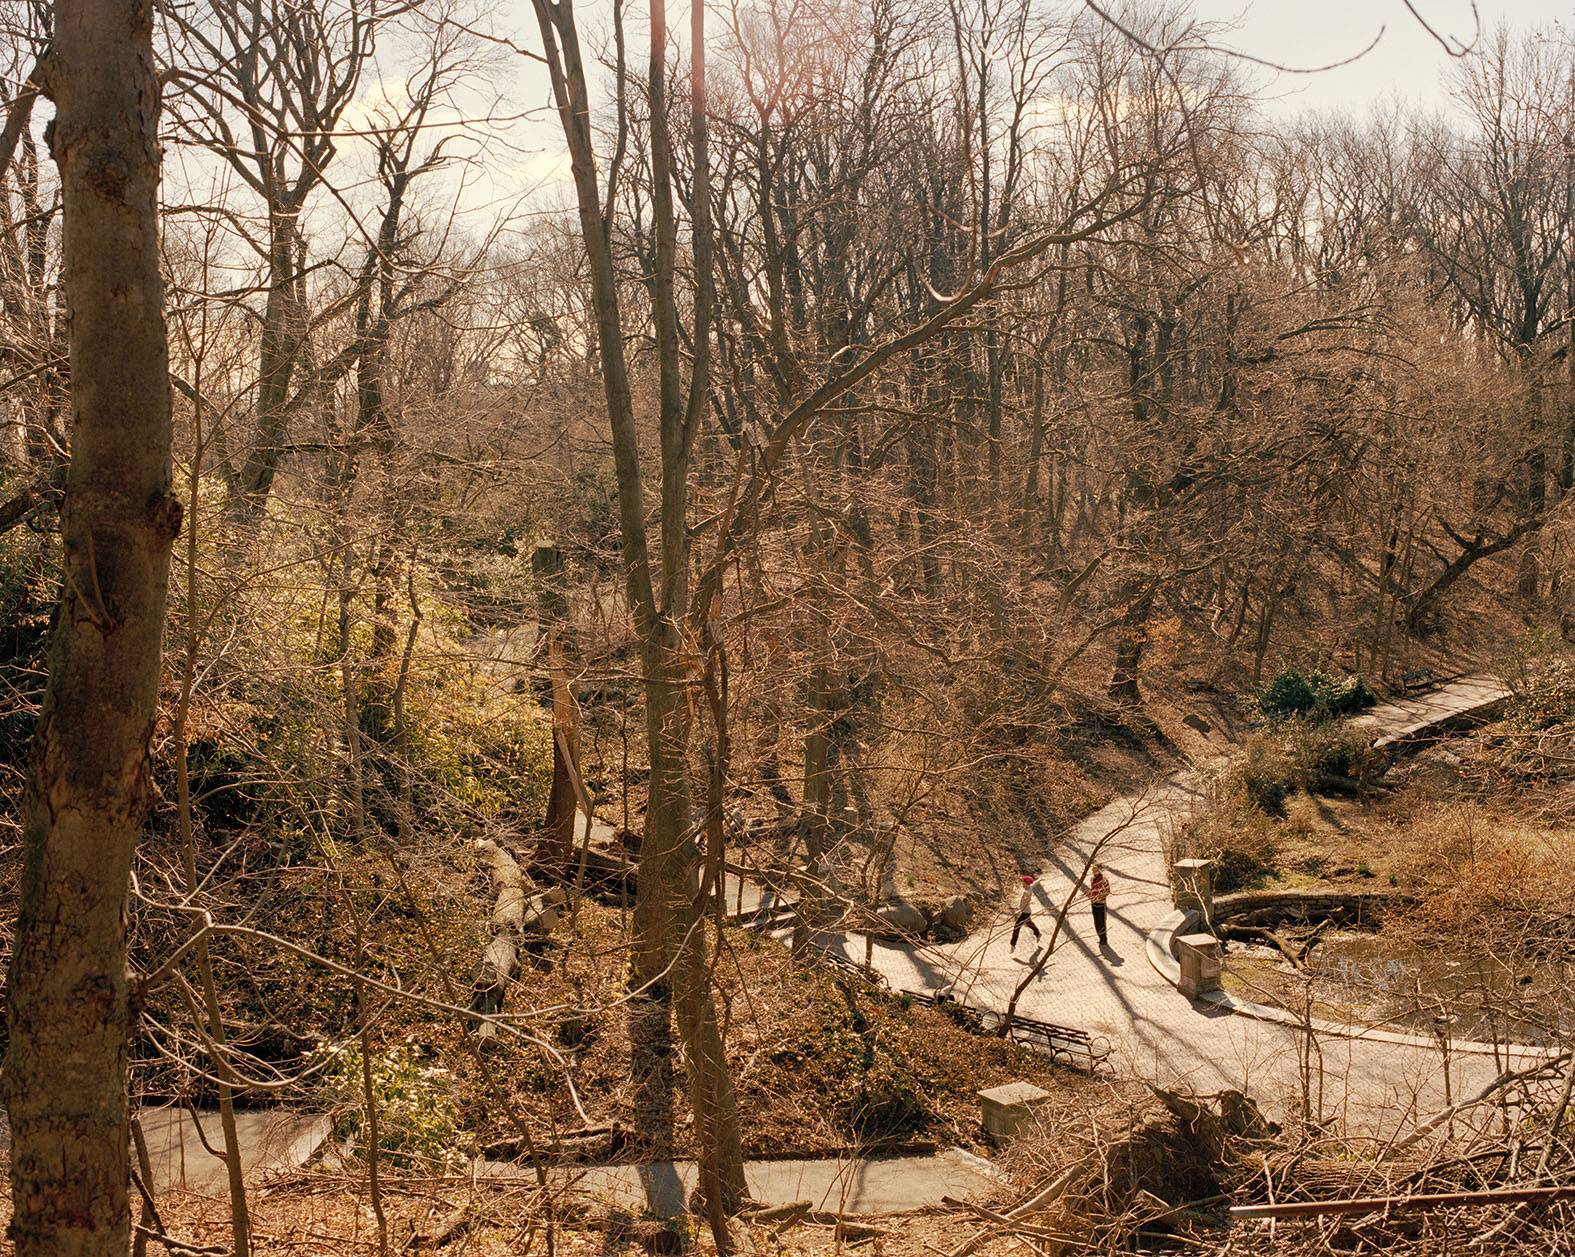 brown wooded winter landscape showing a path in the park with two faraway figures